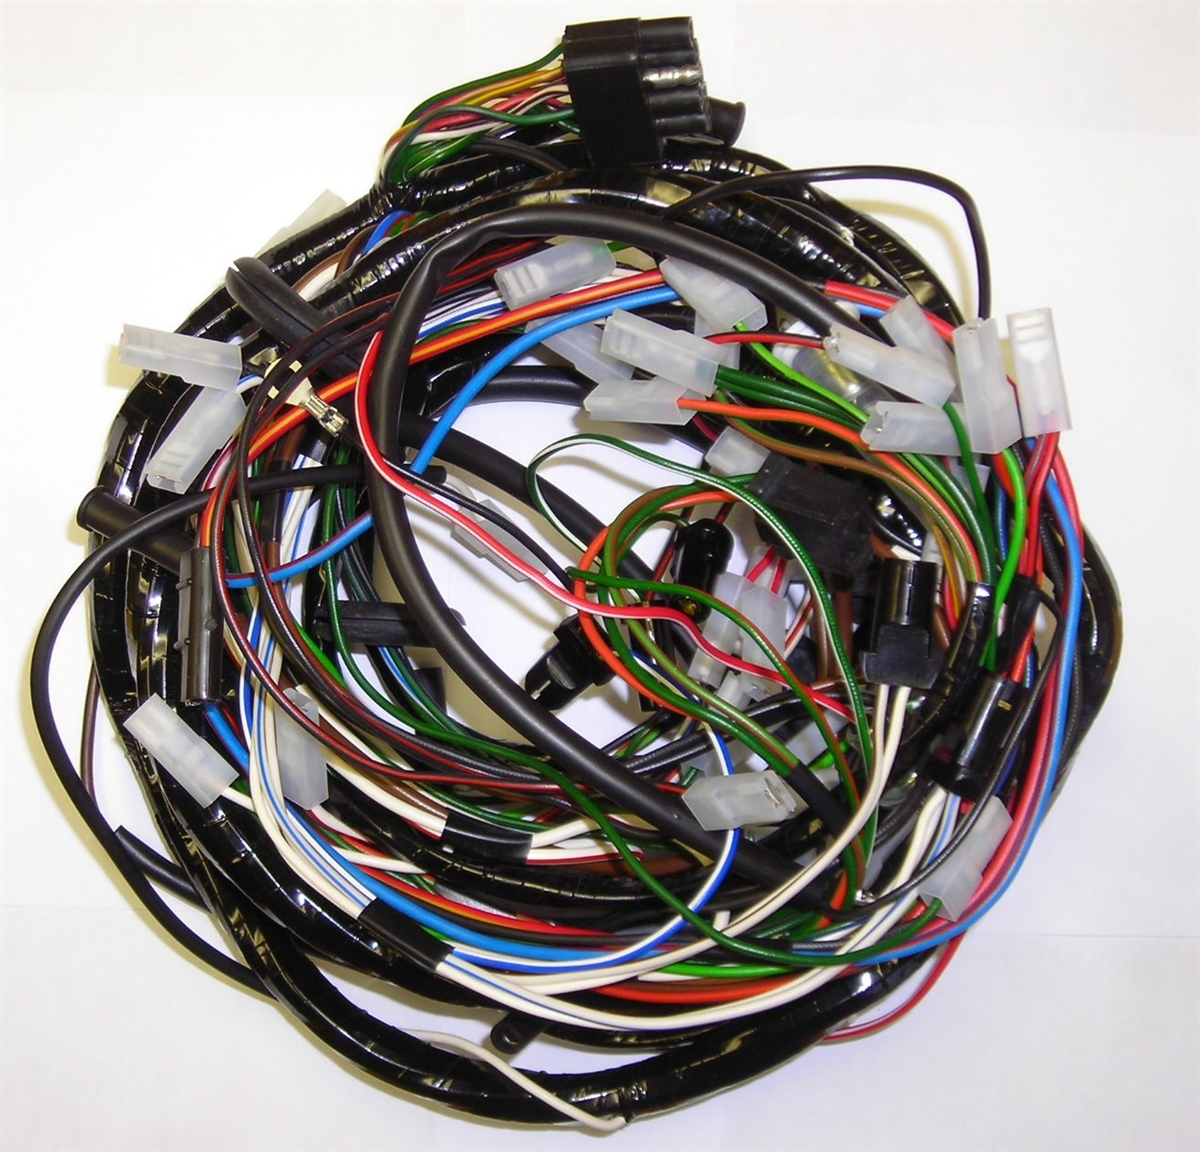 small resolution of land rover series 3 main wiring harness land rover series 3 wiring harness for sale series 3 land rover wiring harness